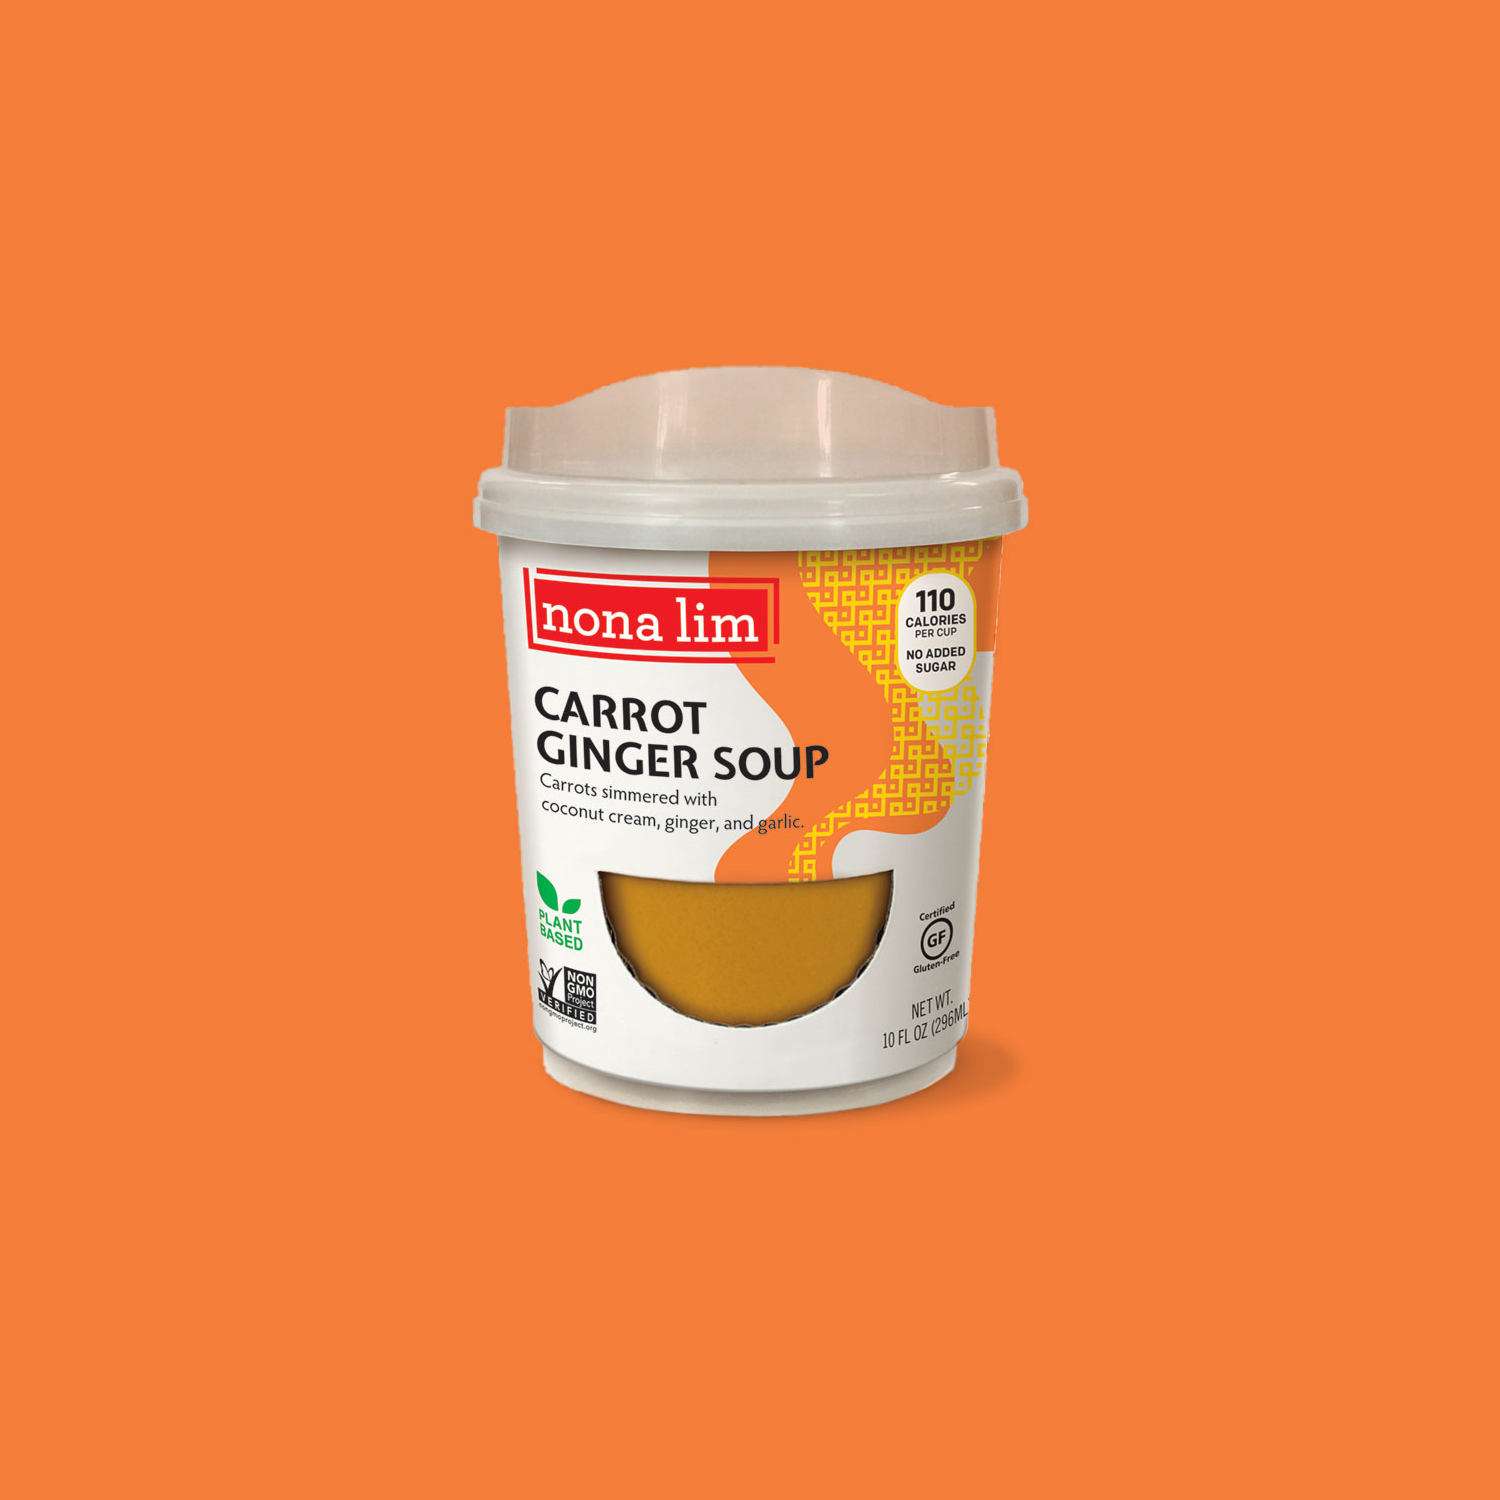 Nona Lim Carrot Ginger Heat and Sip Soup Cup. Vegan, Gluten free, Dairy free and Non GMO.